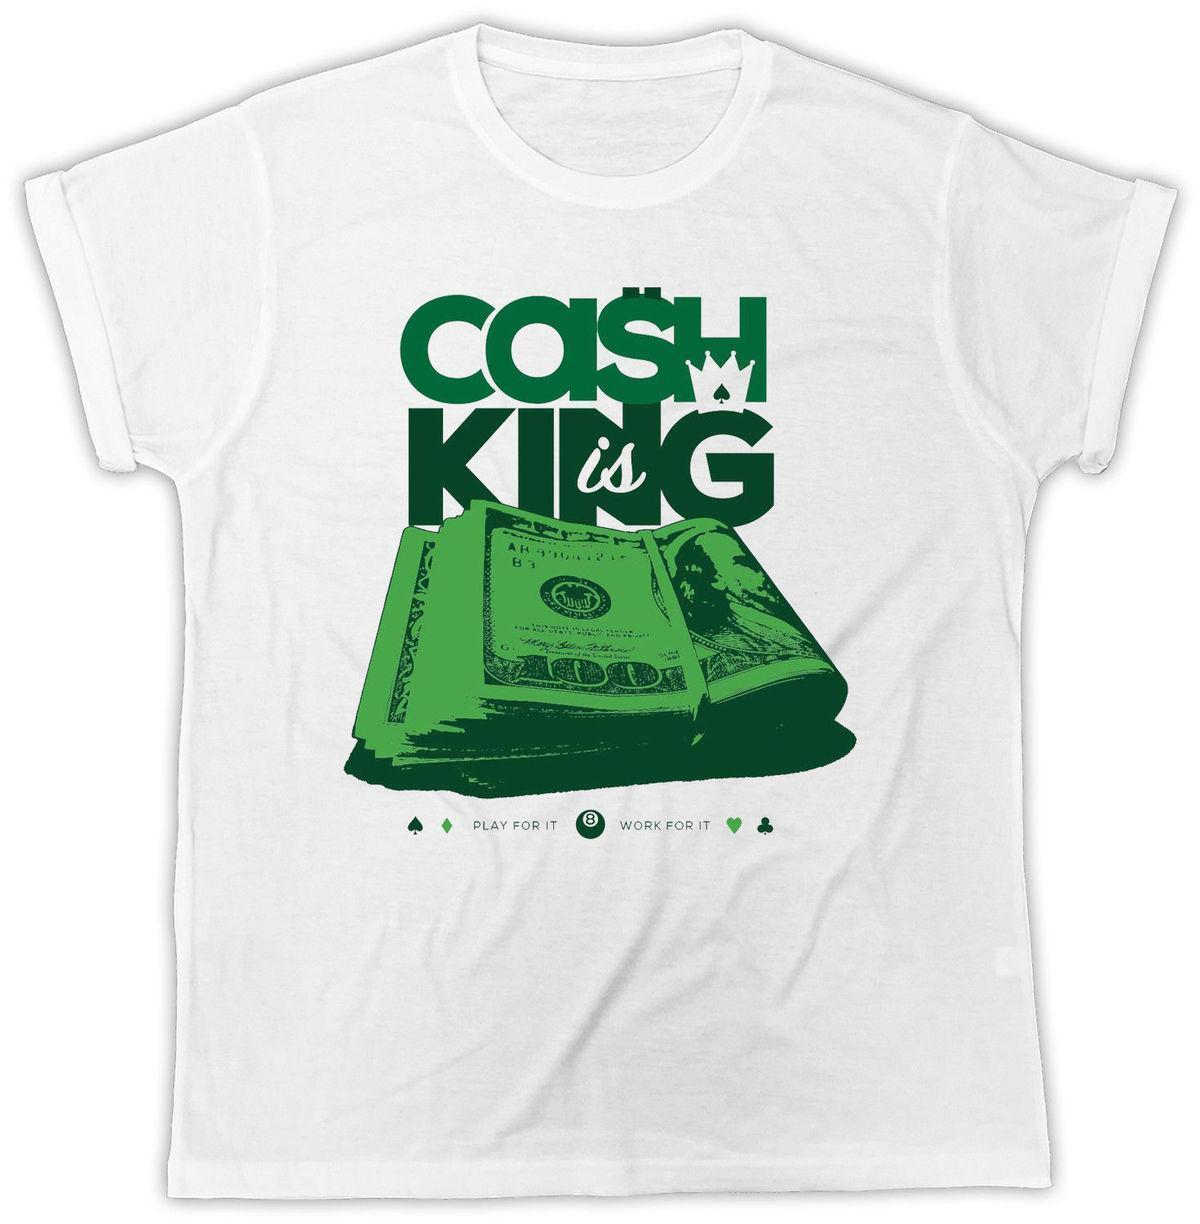 Cash Is King T Shirt Dollar Bill Kid T Ideal Gift Birthday Present T Shirt Summer 2018 Short Sleeve Plus Size White T Shirt Designs Awesome T Shirt Sites